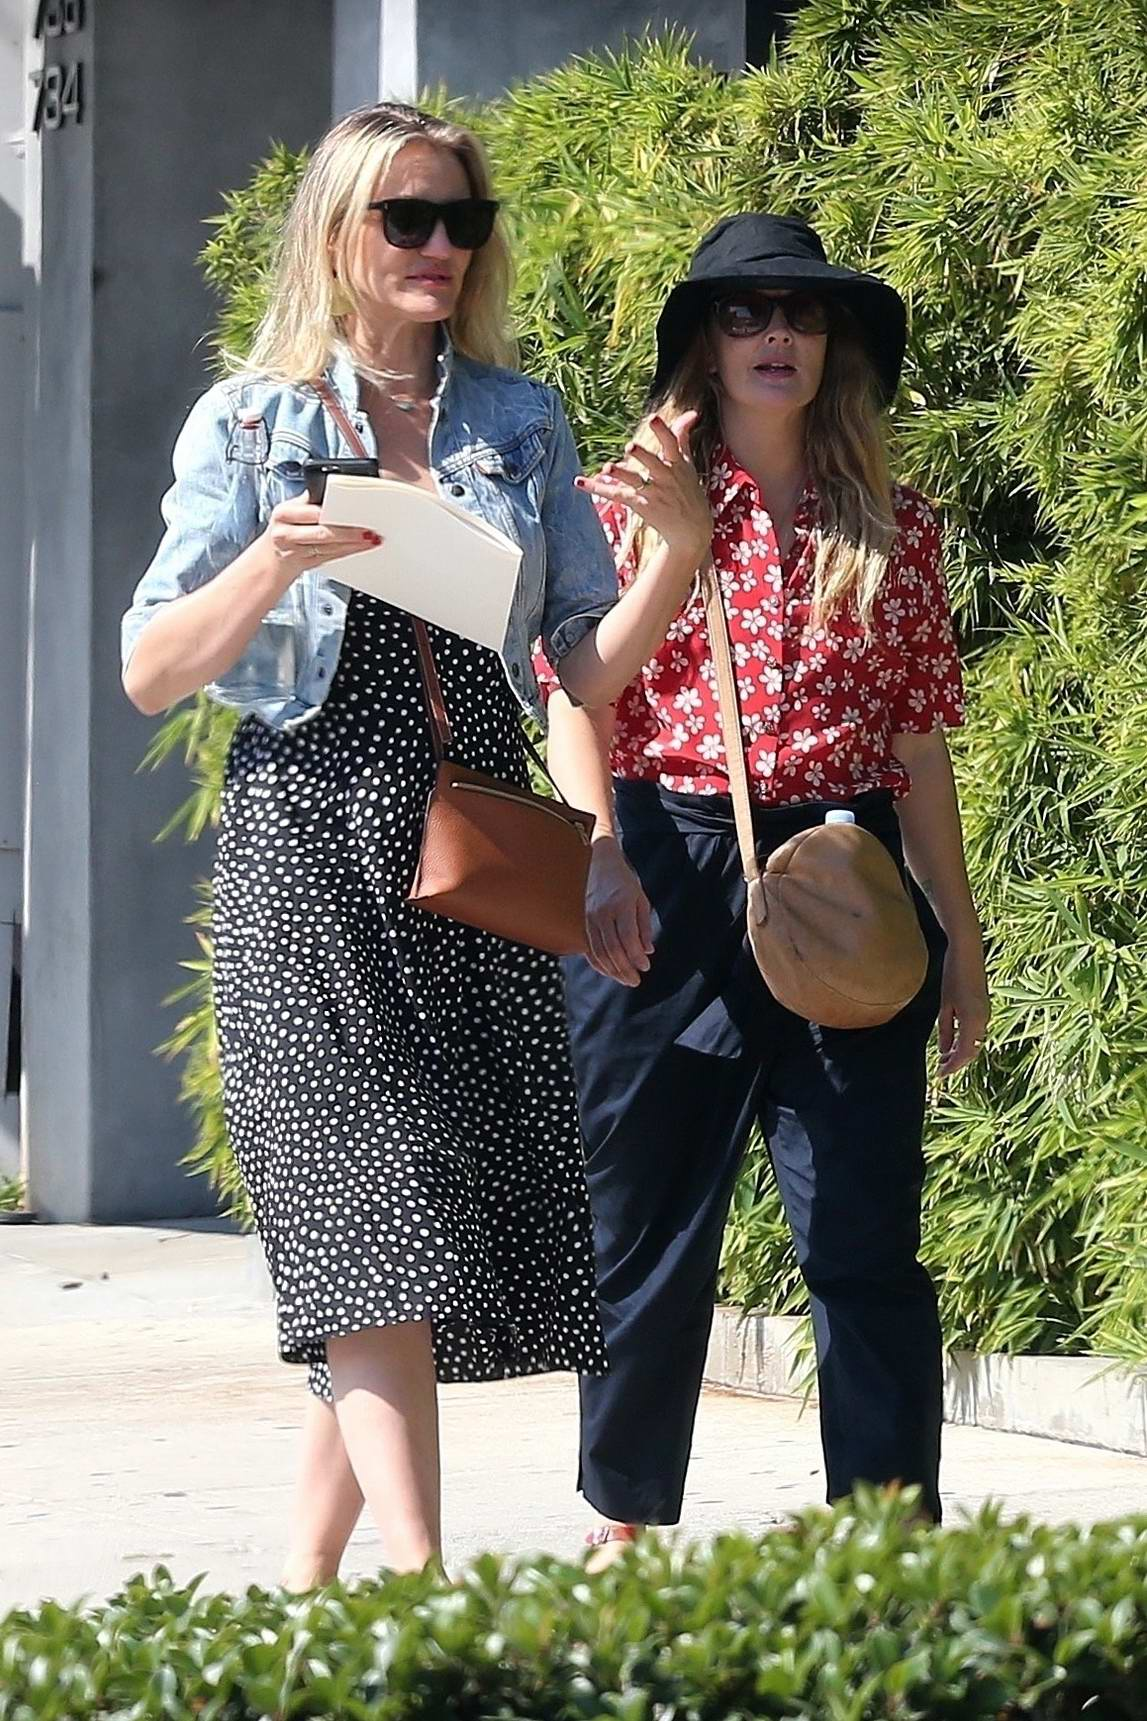 Cameron Diaz and Drew Barrymore out for Shopping at Melrose Place in Los Angeles